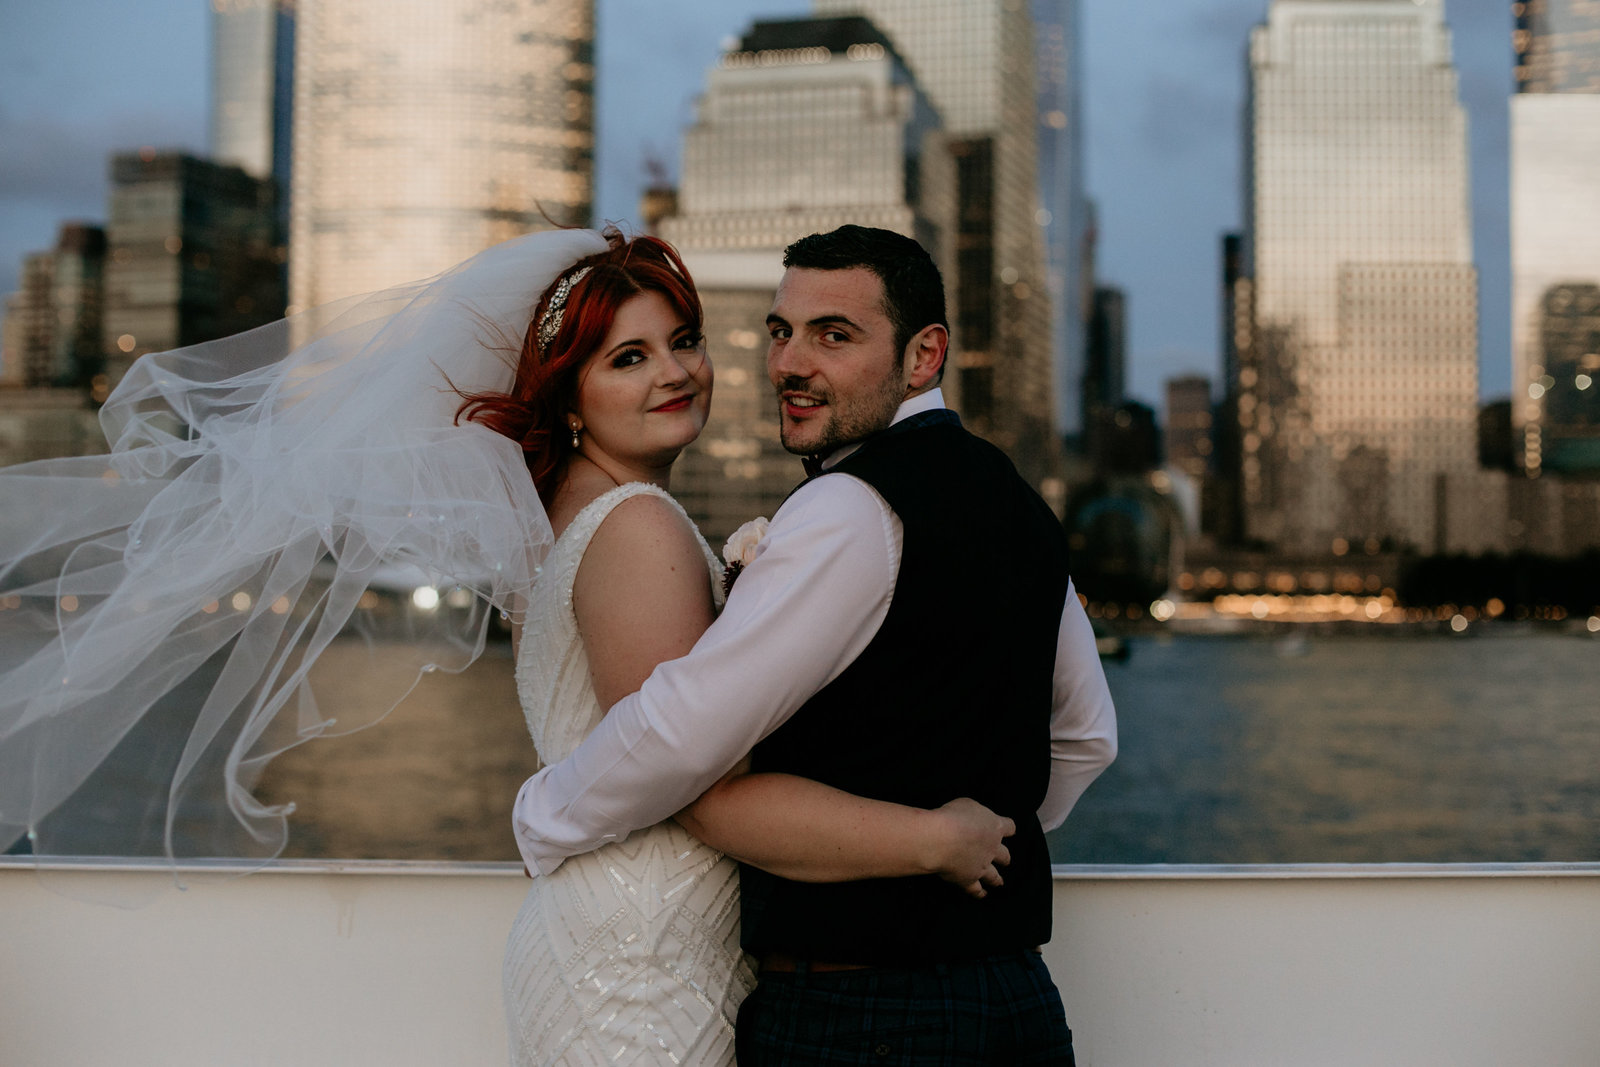 bride and groom on a boat in nyc.